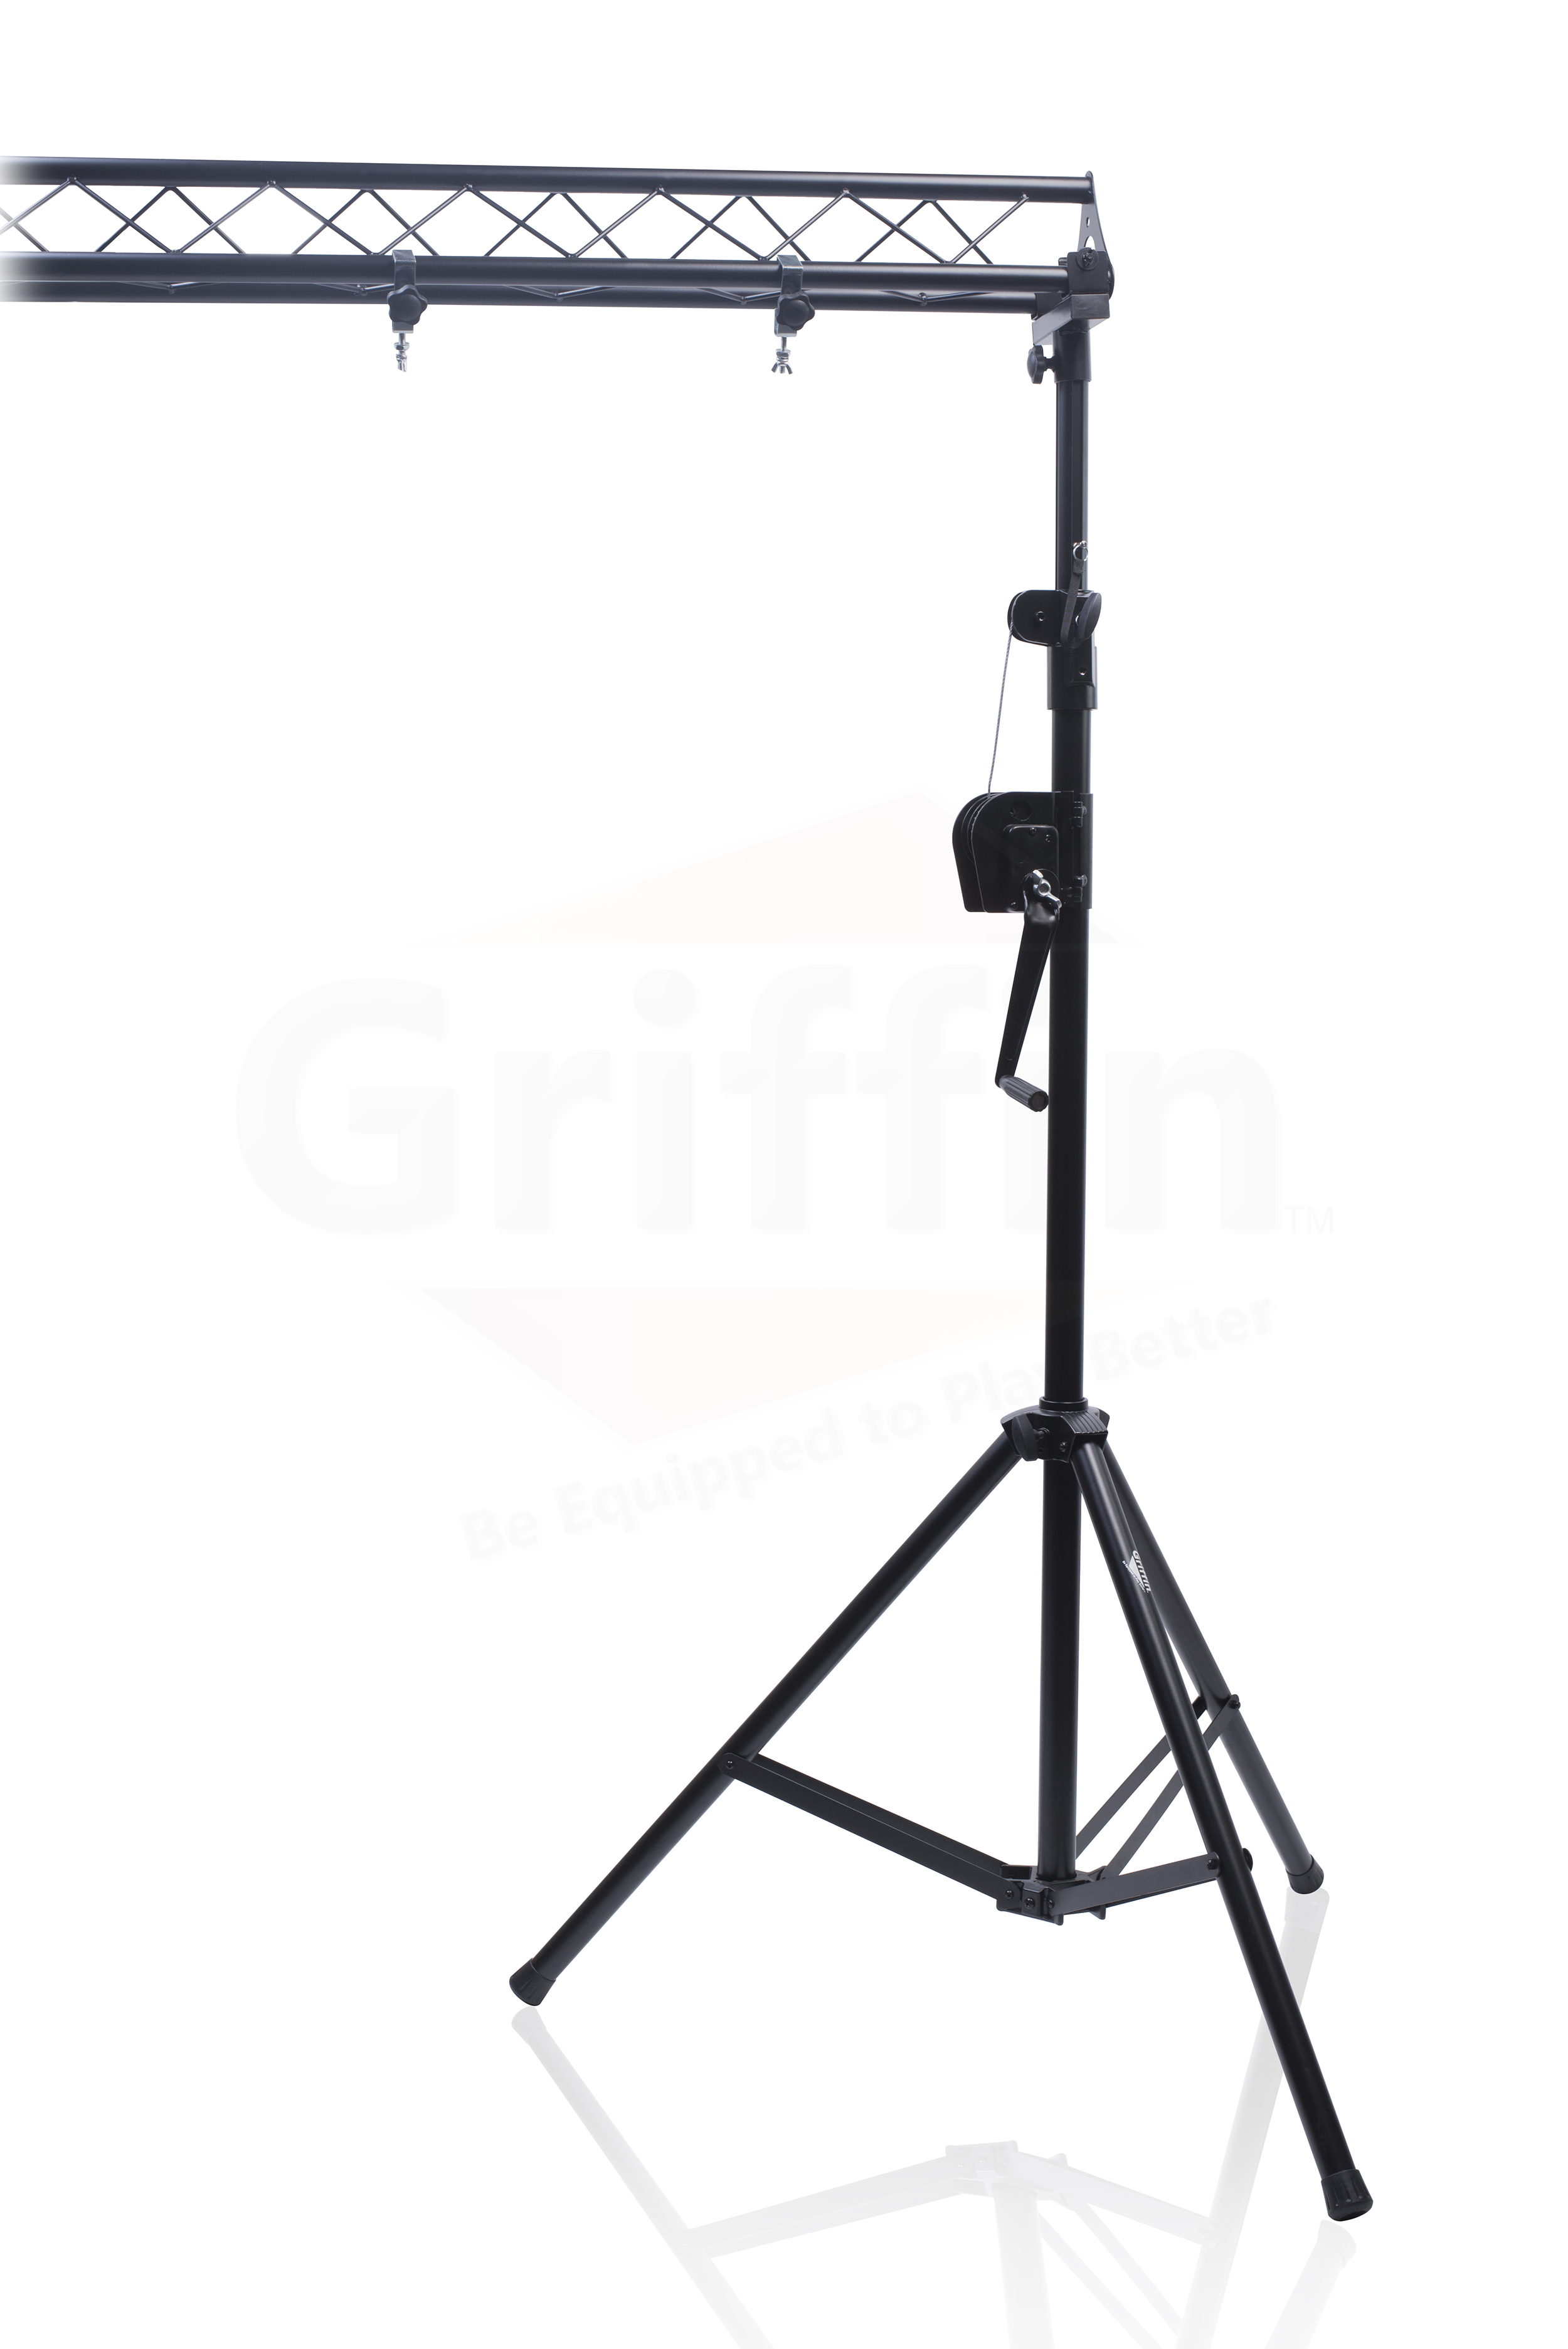 crank up triangle truss light stand system dj lighting trussing stage mount pa ebay. Black Bedroom Furniture Sets. Home Design Ideas